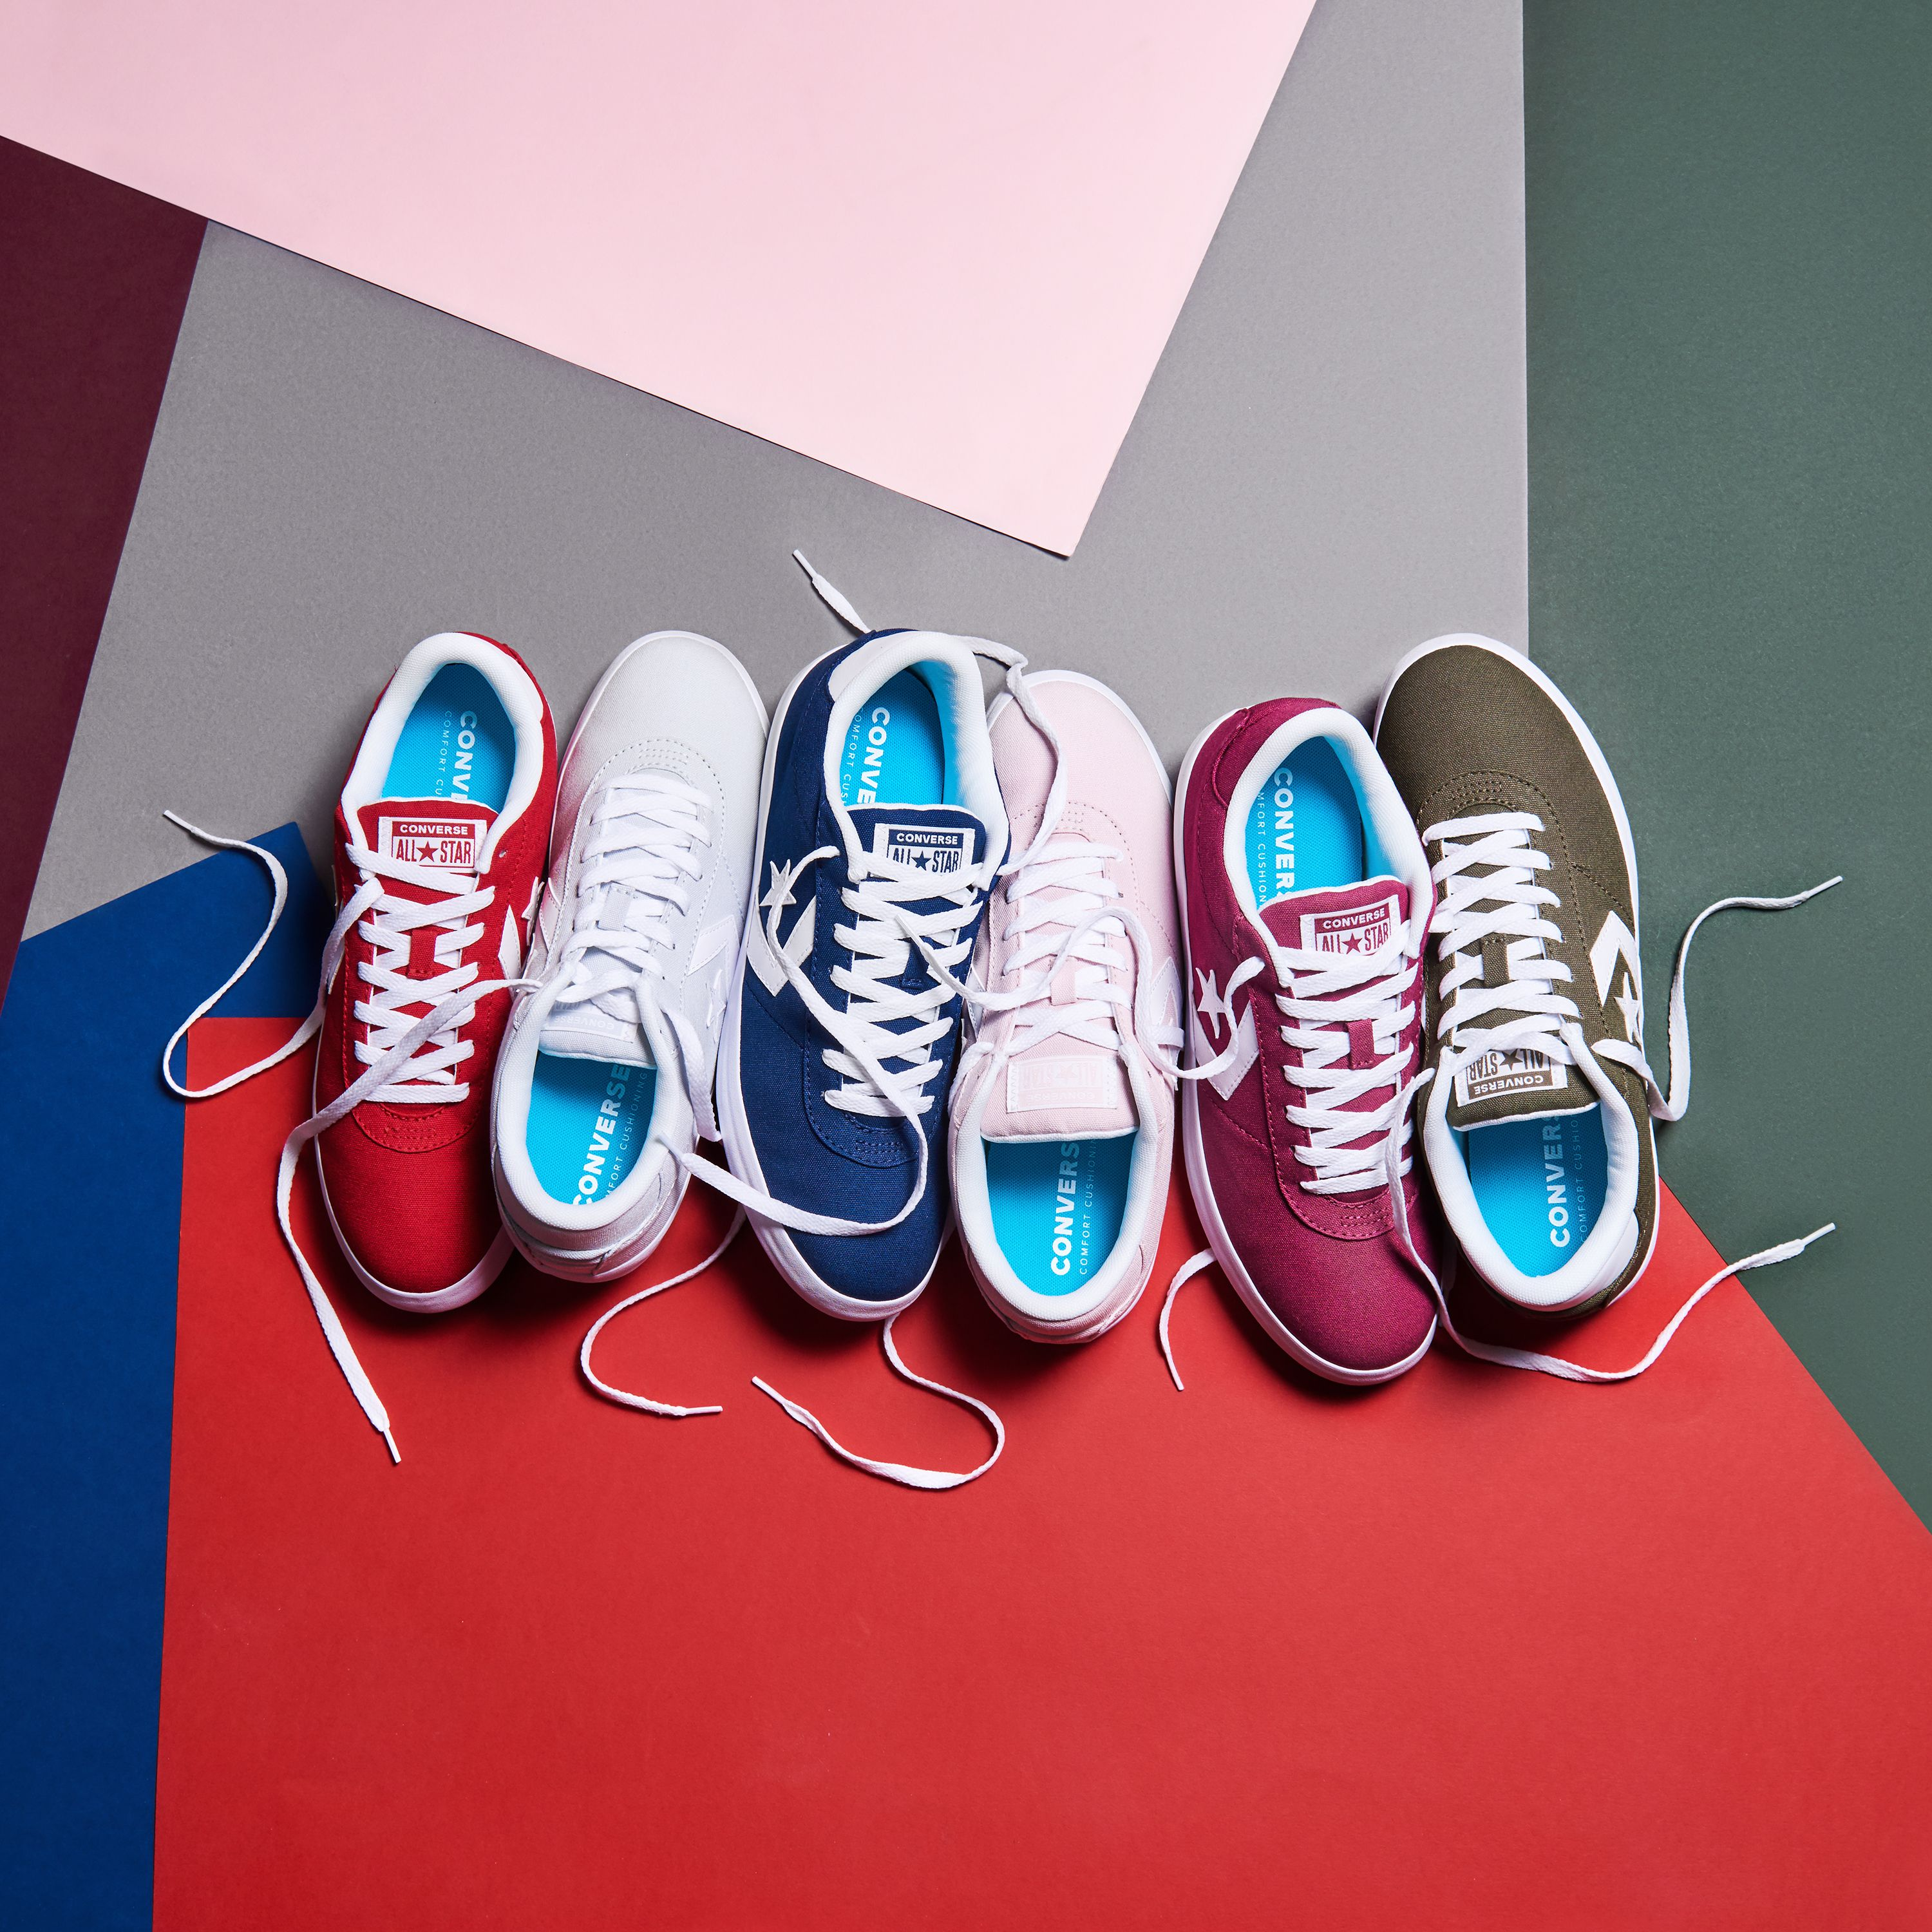 bbeac2cf12f The Converse Point Star trainers come in every single colour